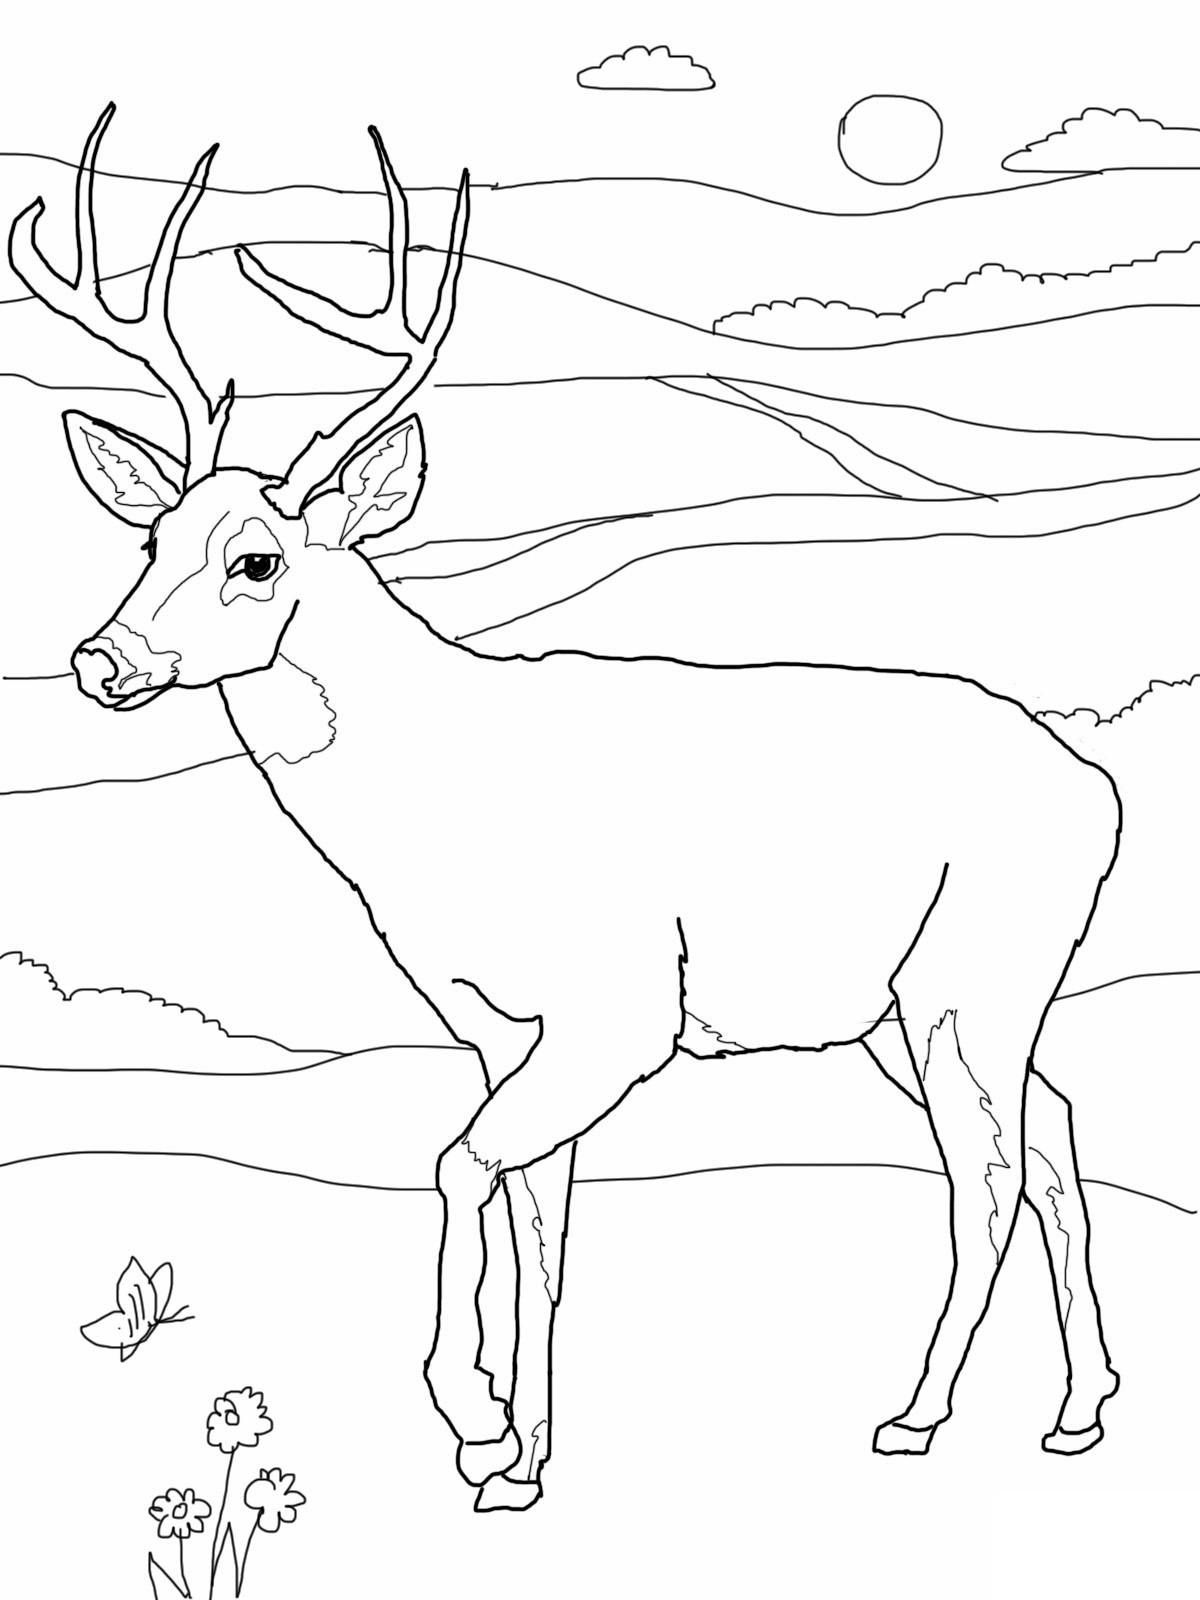 The gruffalo colouring pages to print - Whitetail Deer Coloring Pages